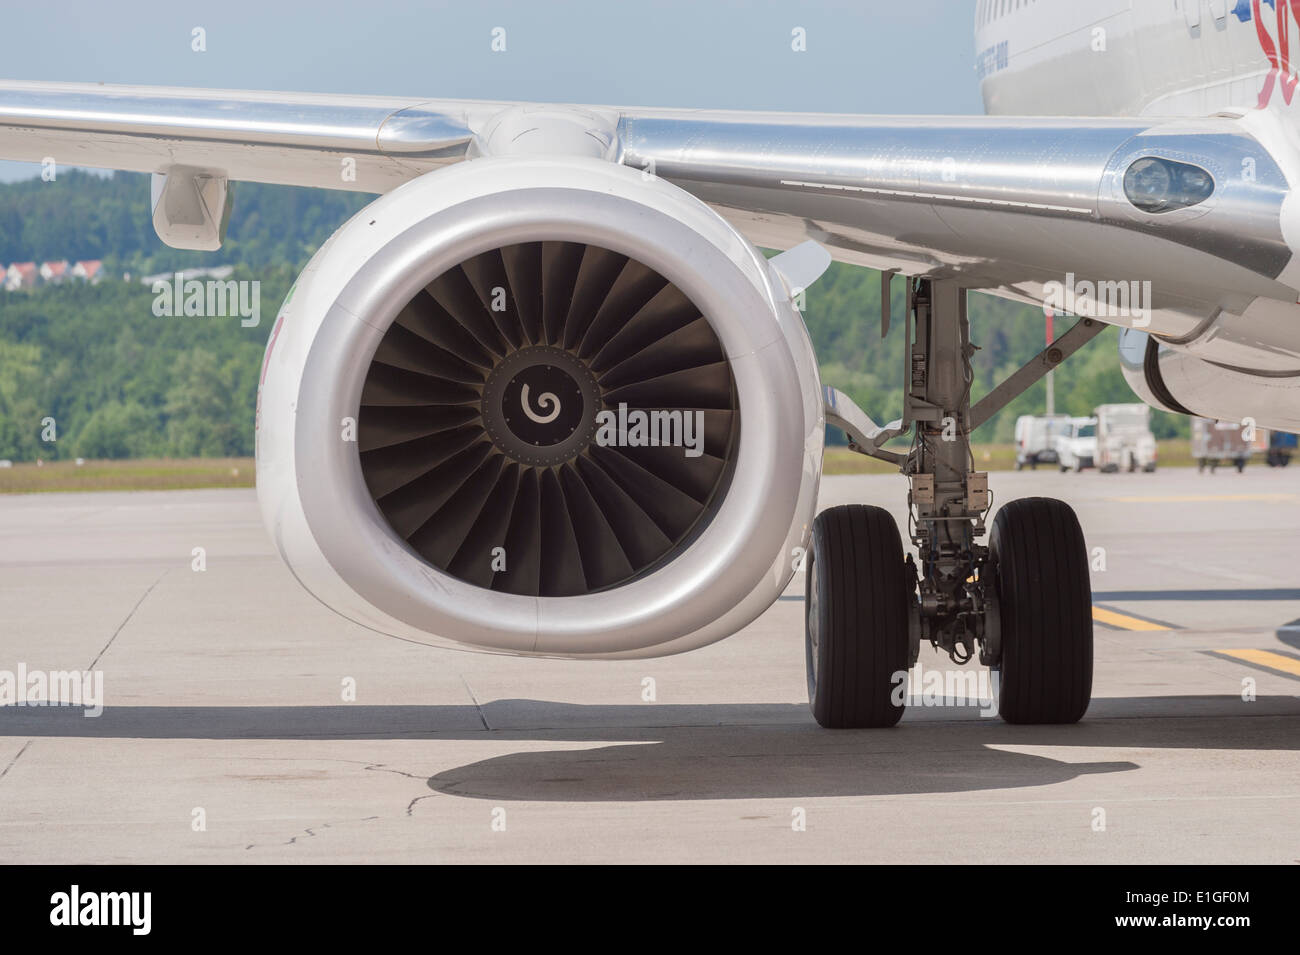 Jet engine of a parked Boeing 737 aircraft at Zurich international airport. - Stock Image